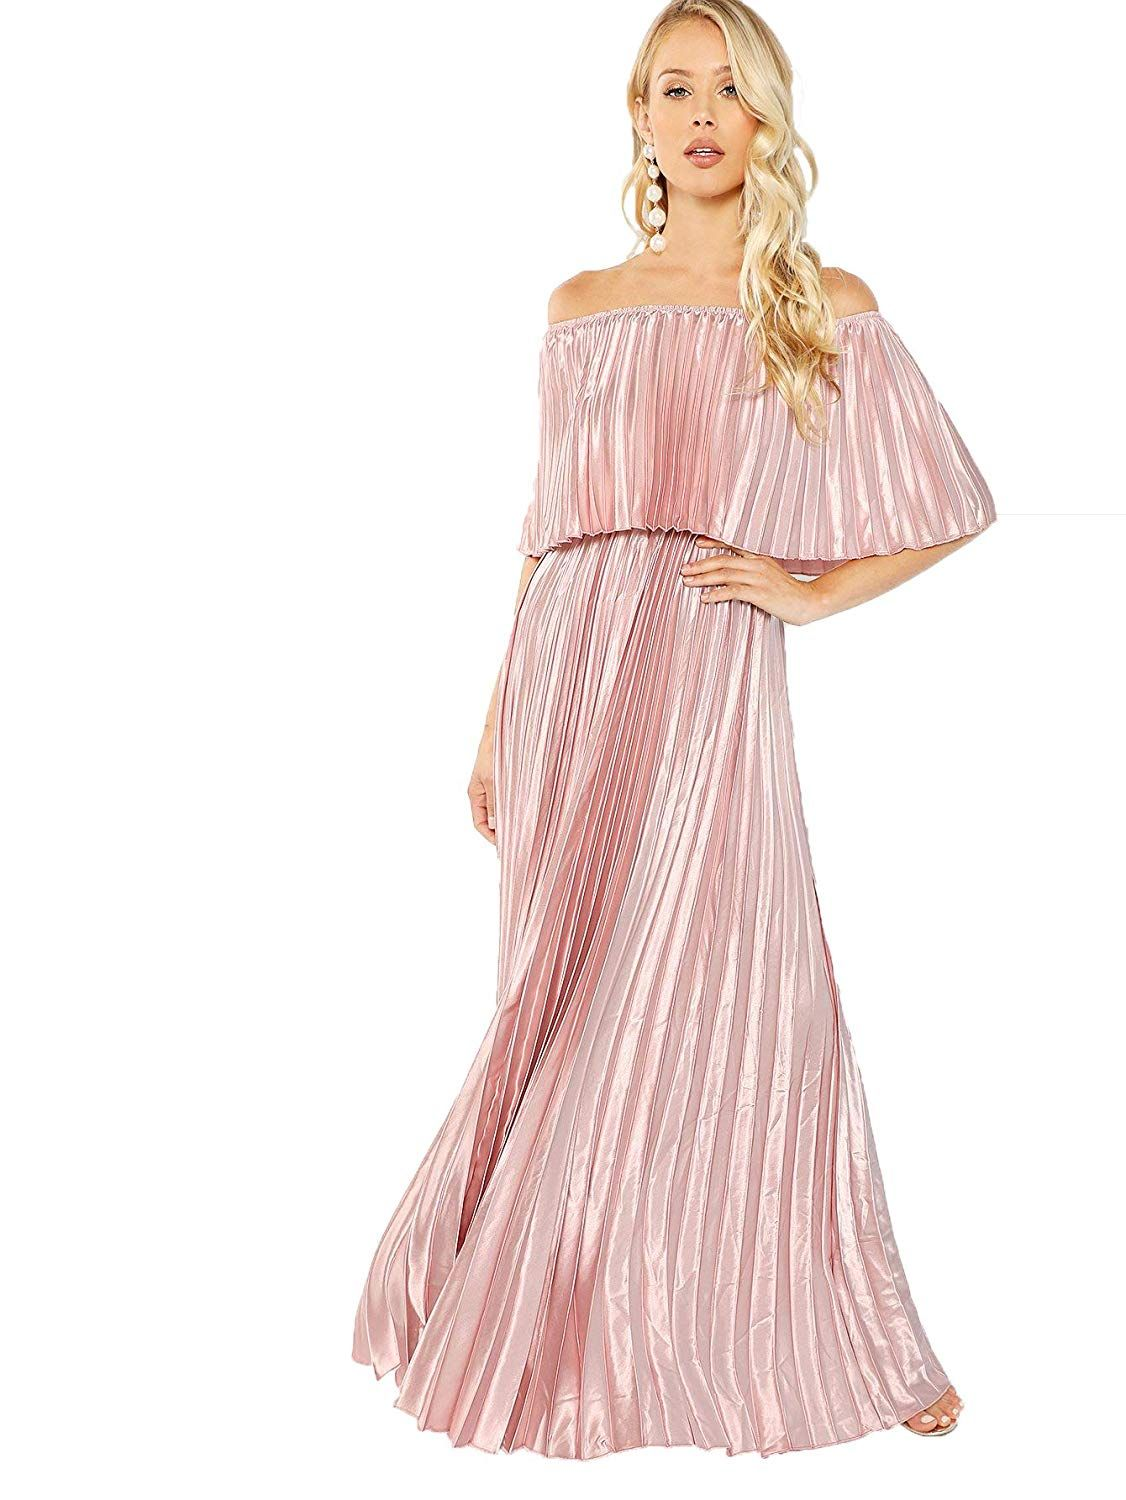 Milumia Women s Off The Shoulder Layered Ruffle Party Maxi Dress4.4 out of  5 stars c38e9f2a8